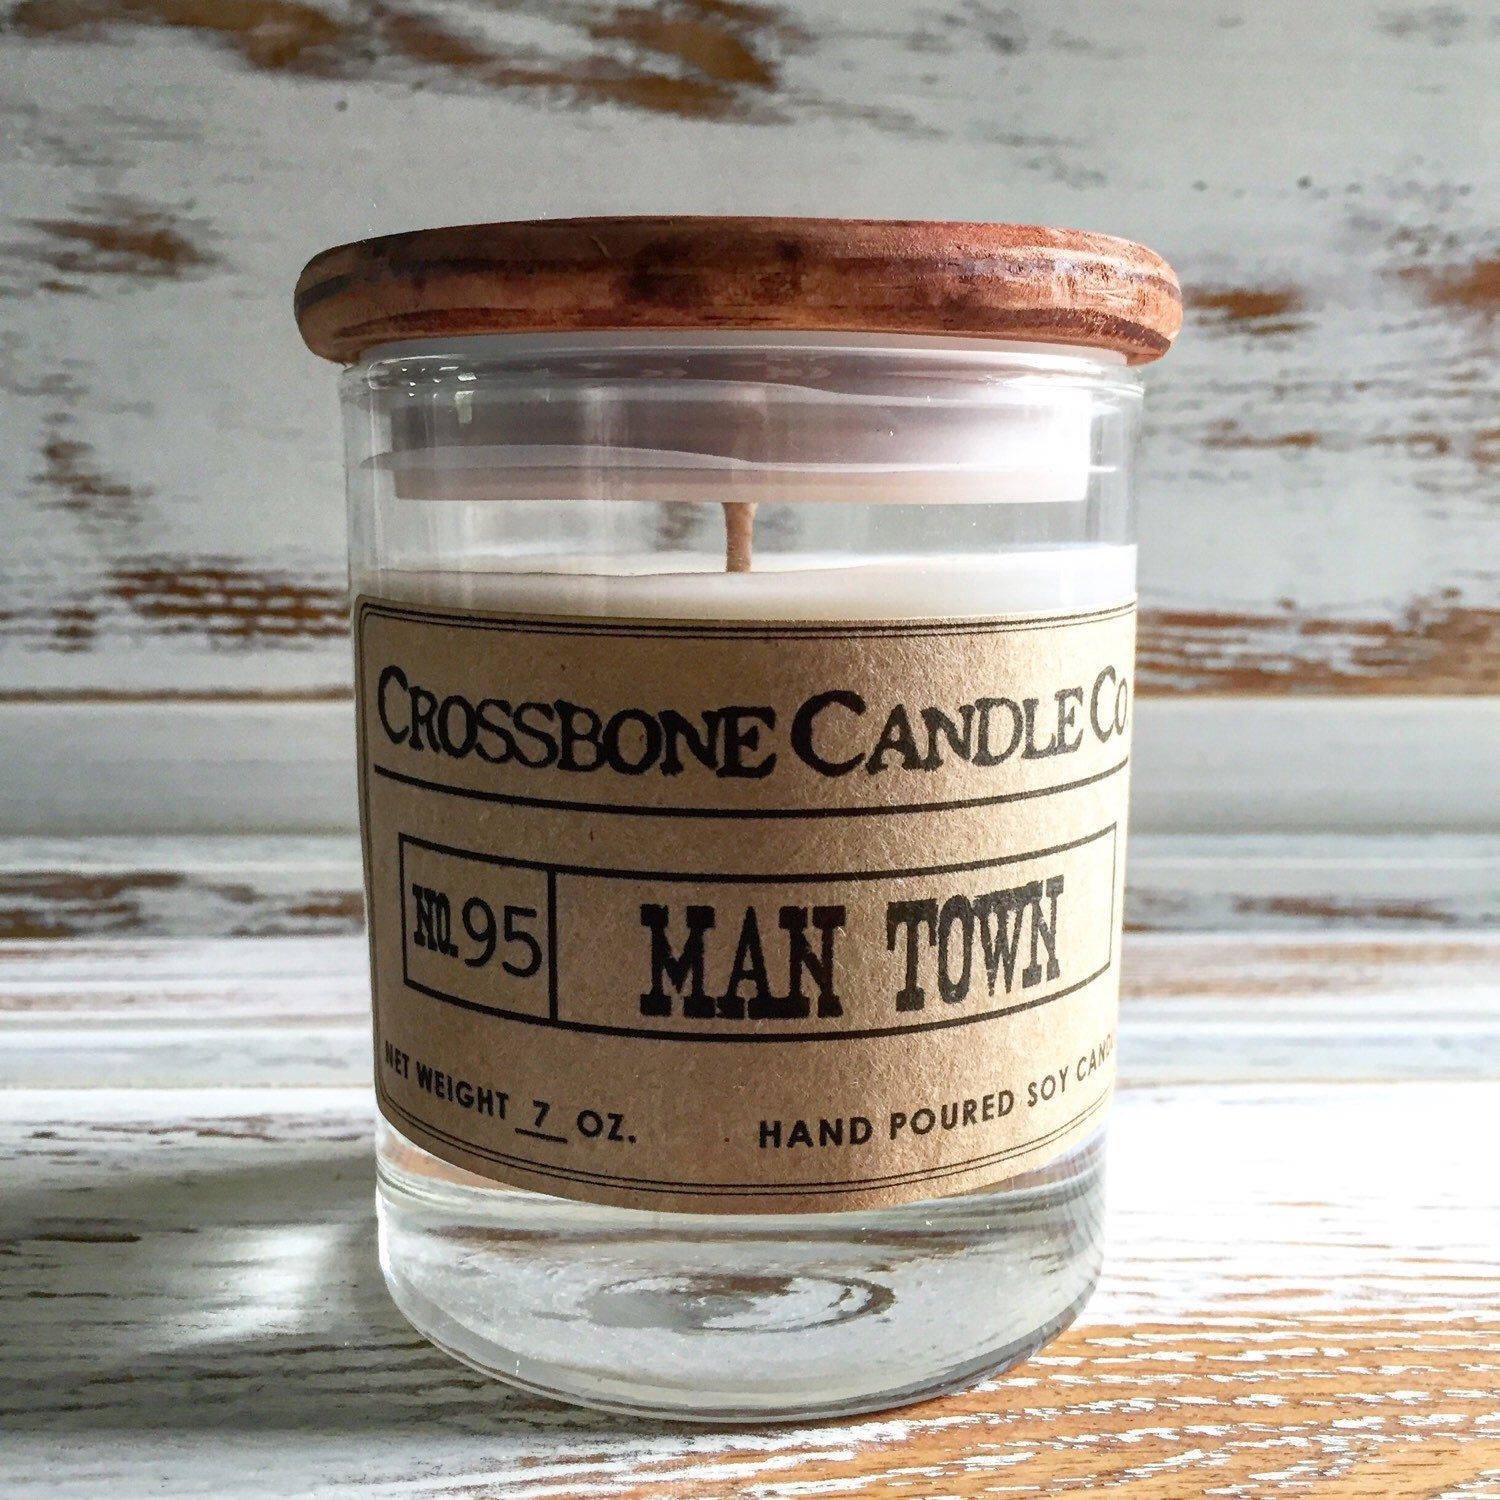 No. 95 MAN TOWN by CrossboneCandle on Etsy https://www.etsy.com/listing/249183998/no-95-man-town